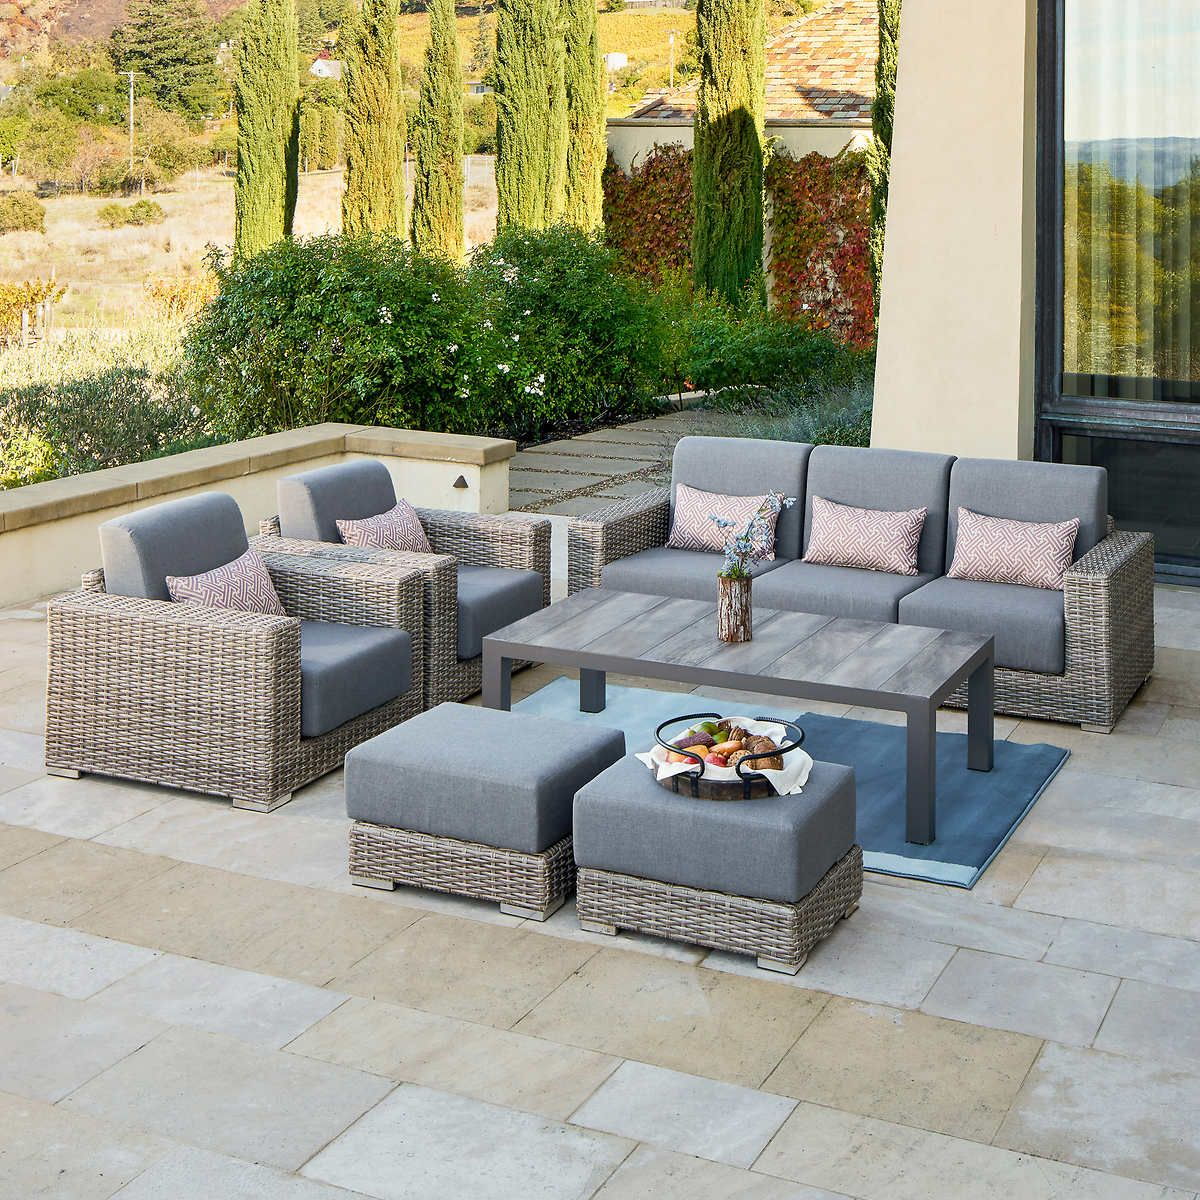 Pin By Anne Duff On Outdoor Furniture Outdoor Furniture Patio Furniture Layout Gray Patio Furniture